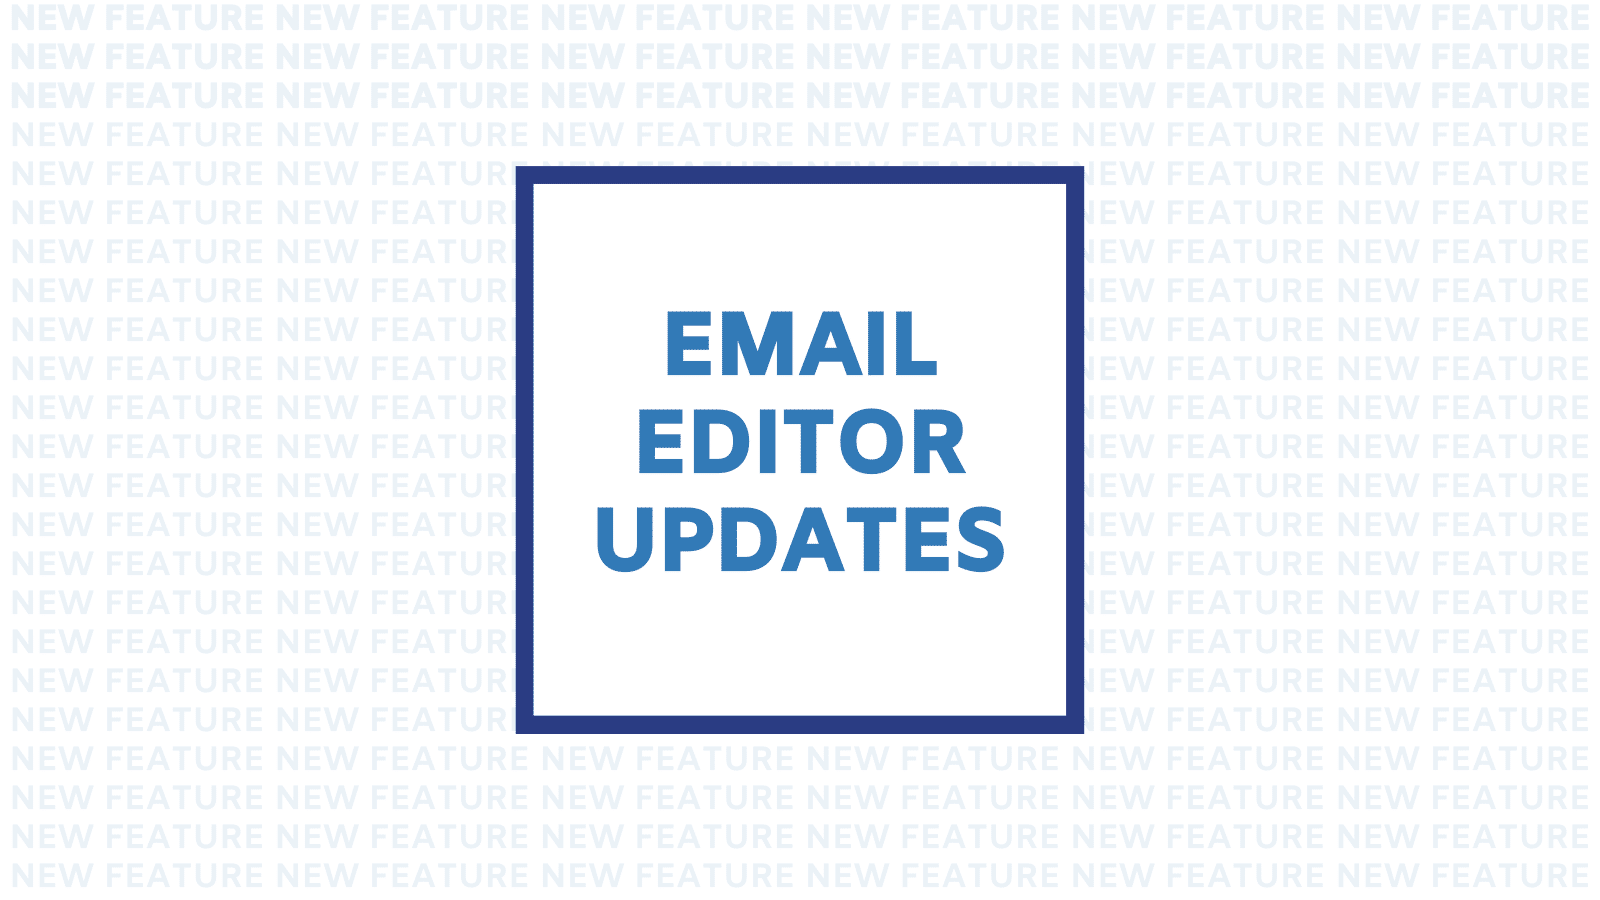 Email Editor Updates